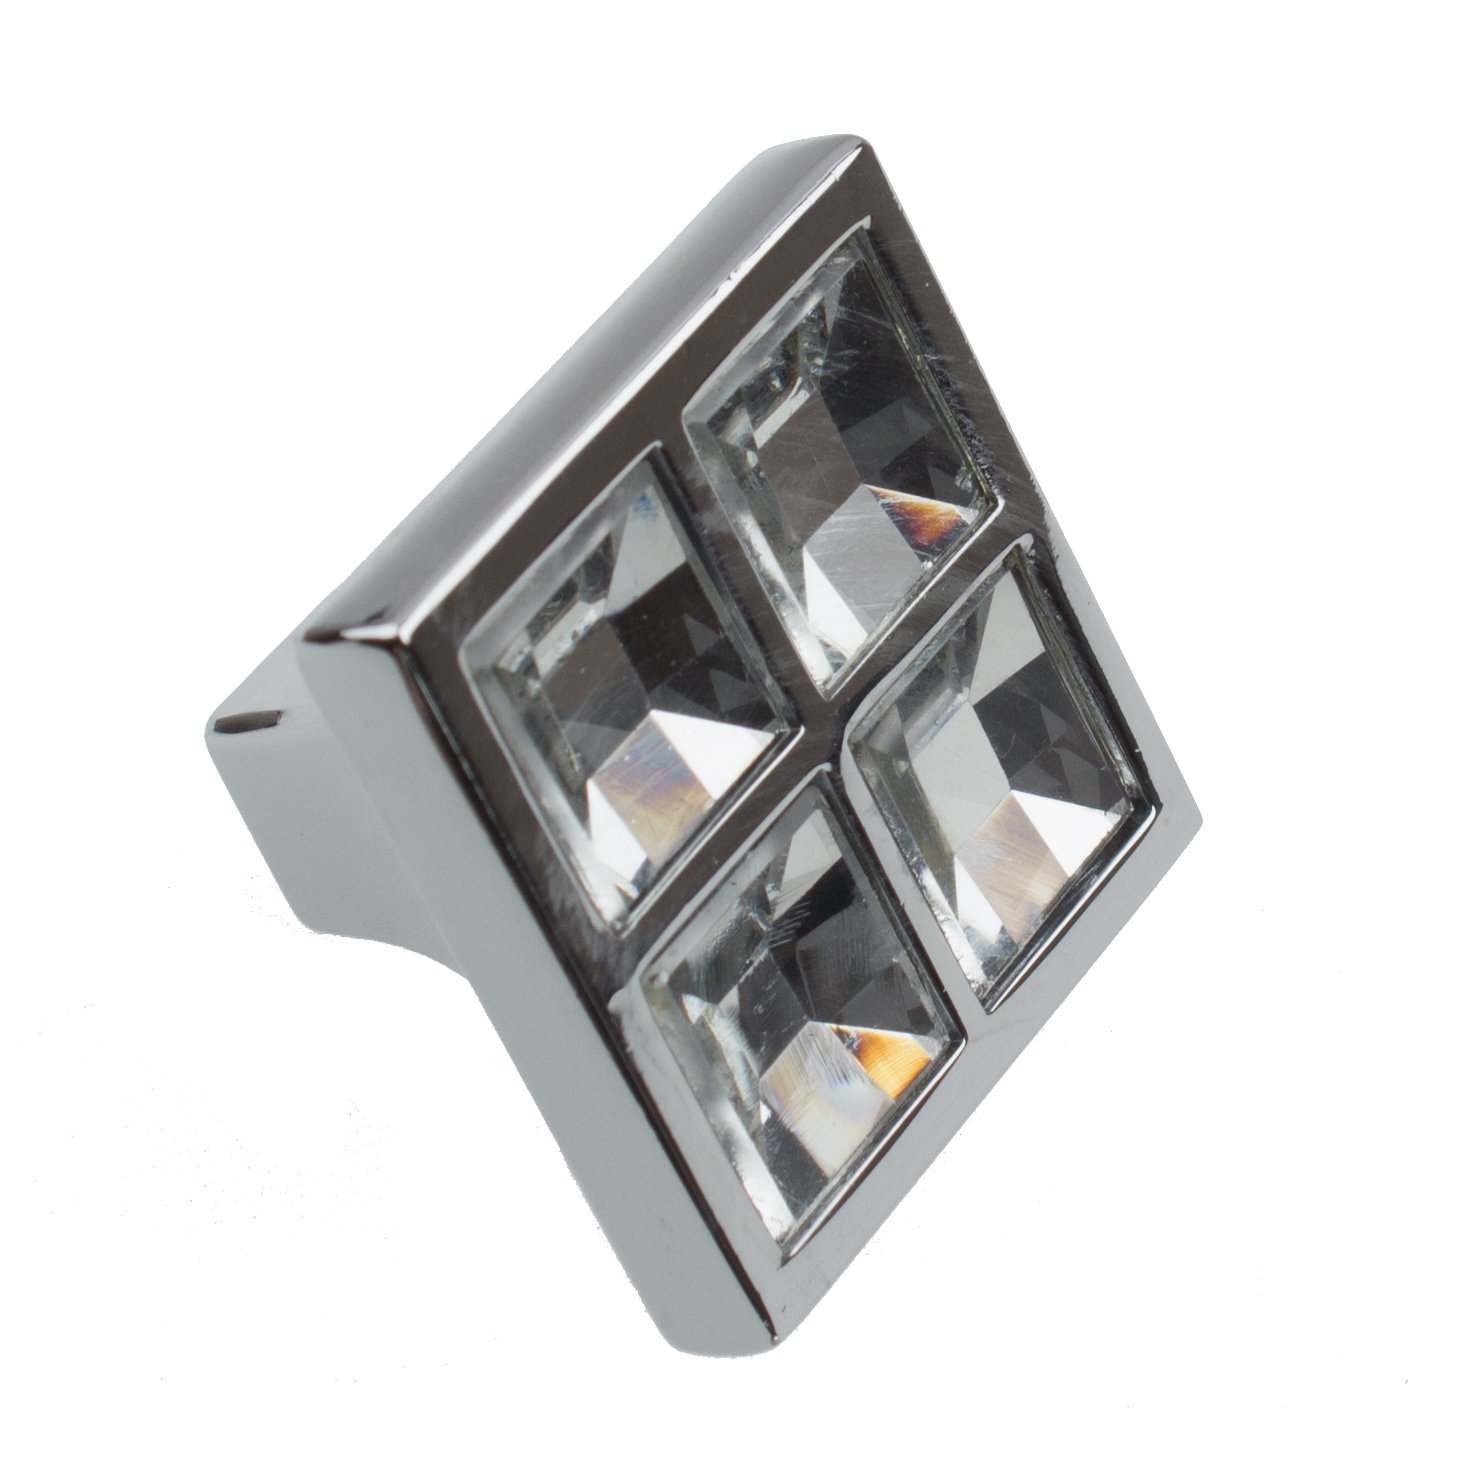 GlideRite Hardware 9051-CR-25 Small Square Clear K9 Crystal Cabinet Knobs 25 Pack